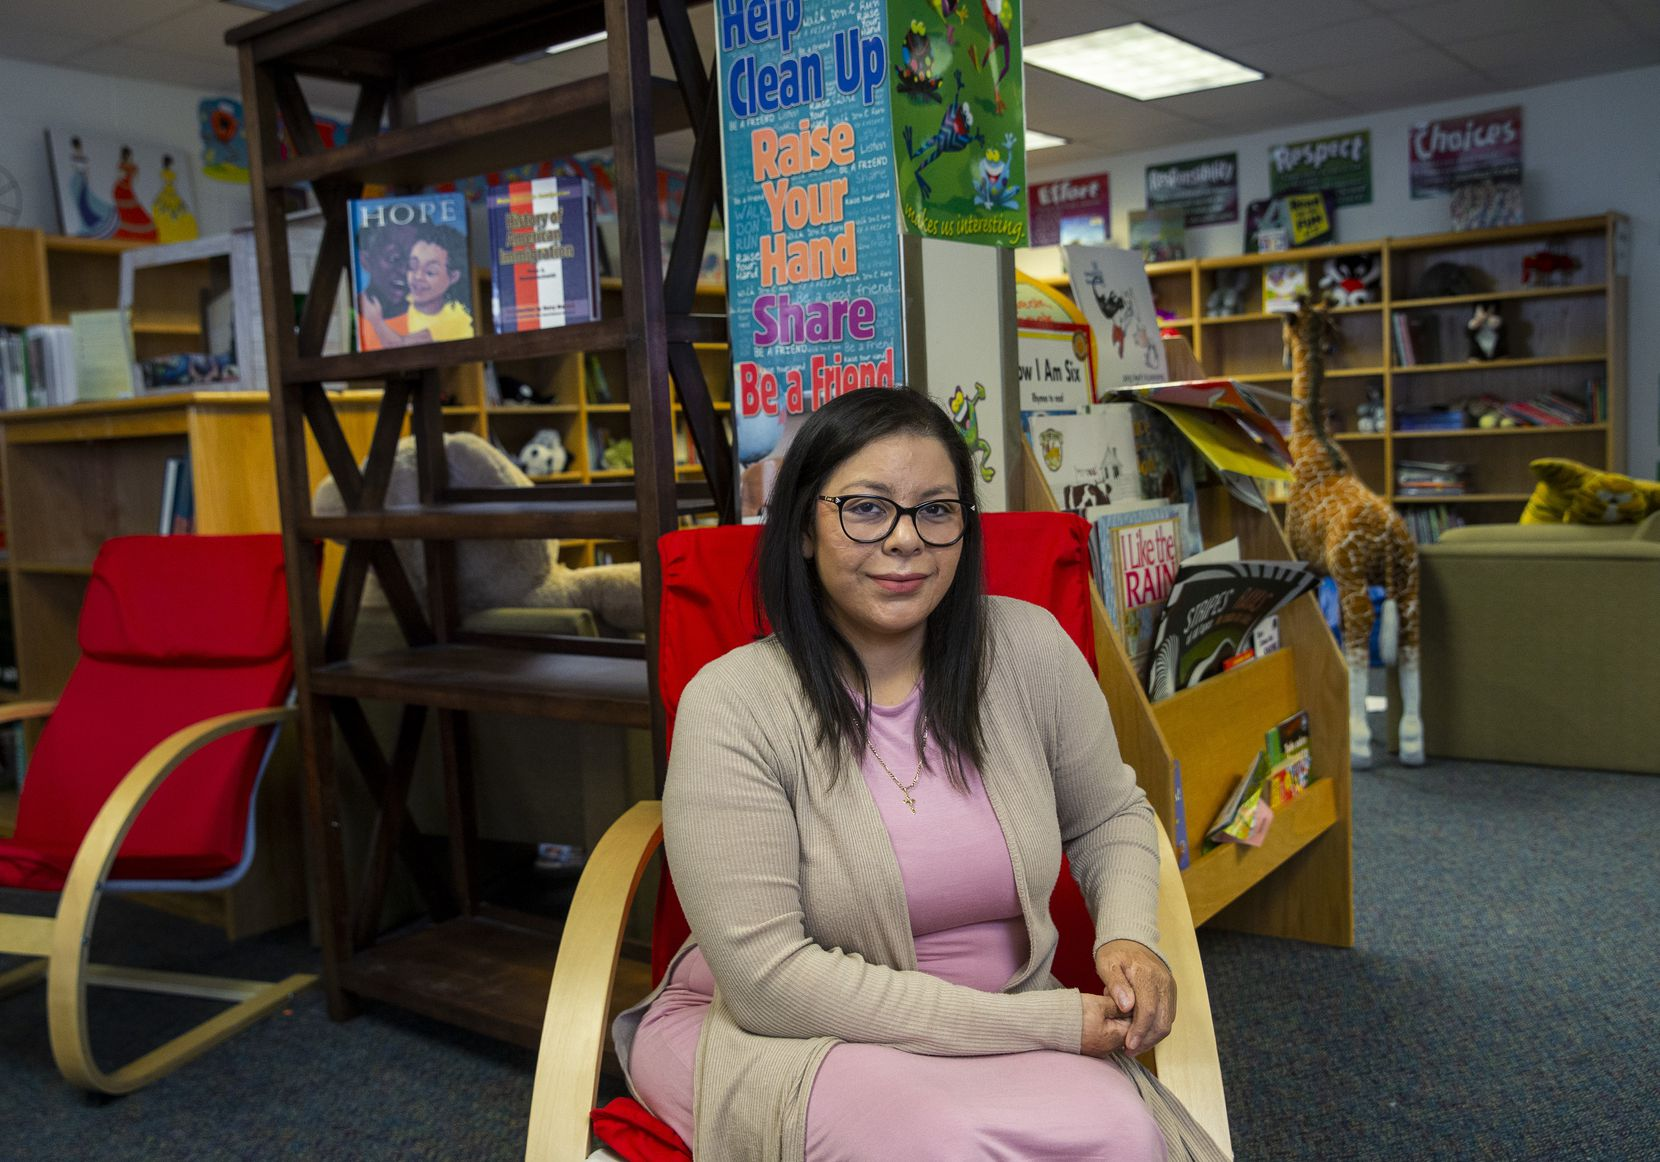 Jessica Hernandez, a DACA recipient and community liaison at S.S. Conner Elementary School, poses for a portrait at the campus in Dallas on Friday, Nov. 9, 2019. The Supreme Court will hear arguments Tuesday about DACA's legality. Hernandez said that without DACA, her career would be irreparably disrupted. (Lynda M. Gonzalez/The Dallas Morning News)